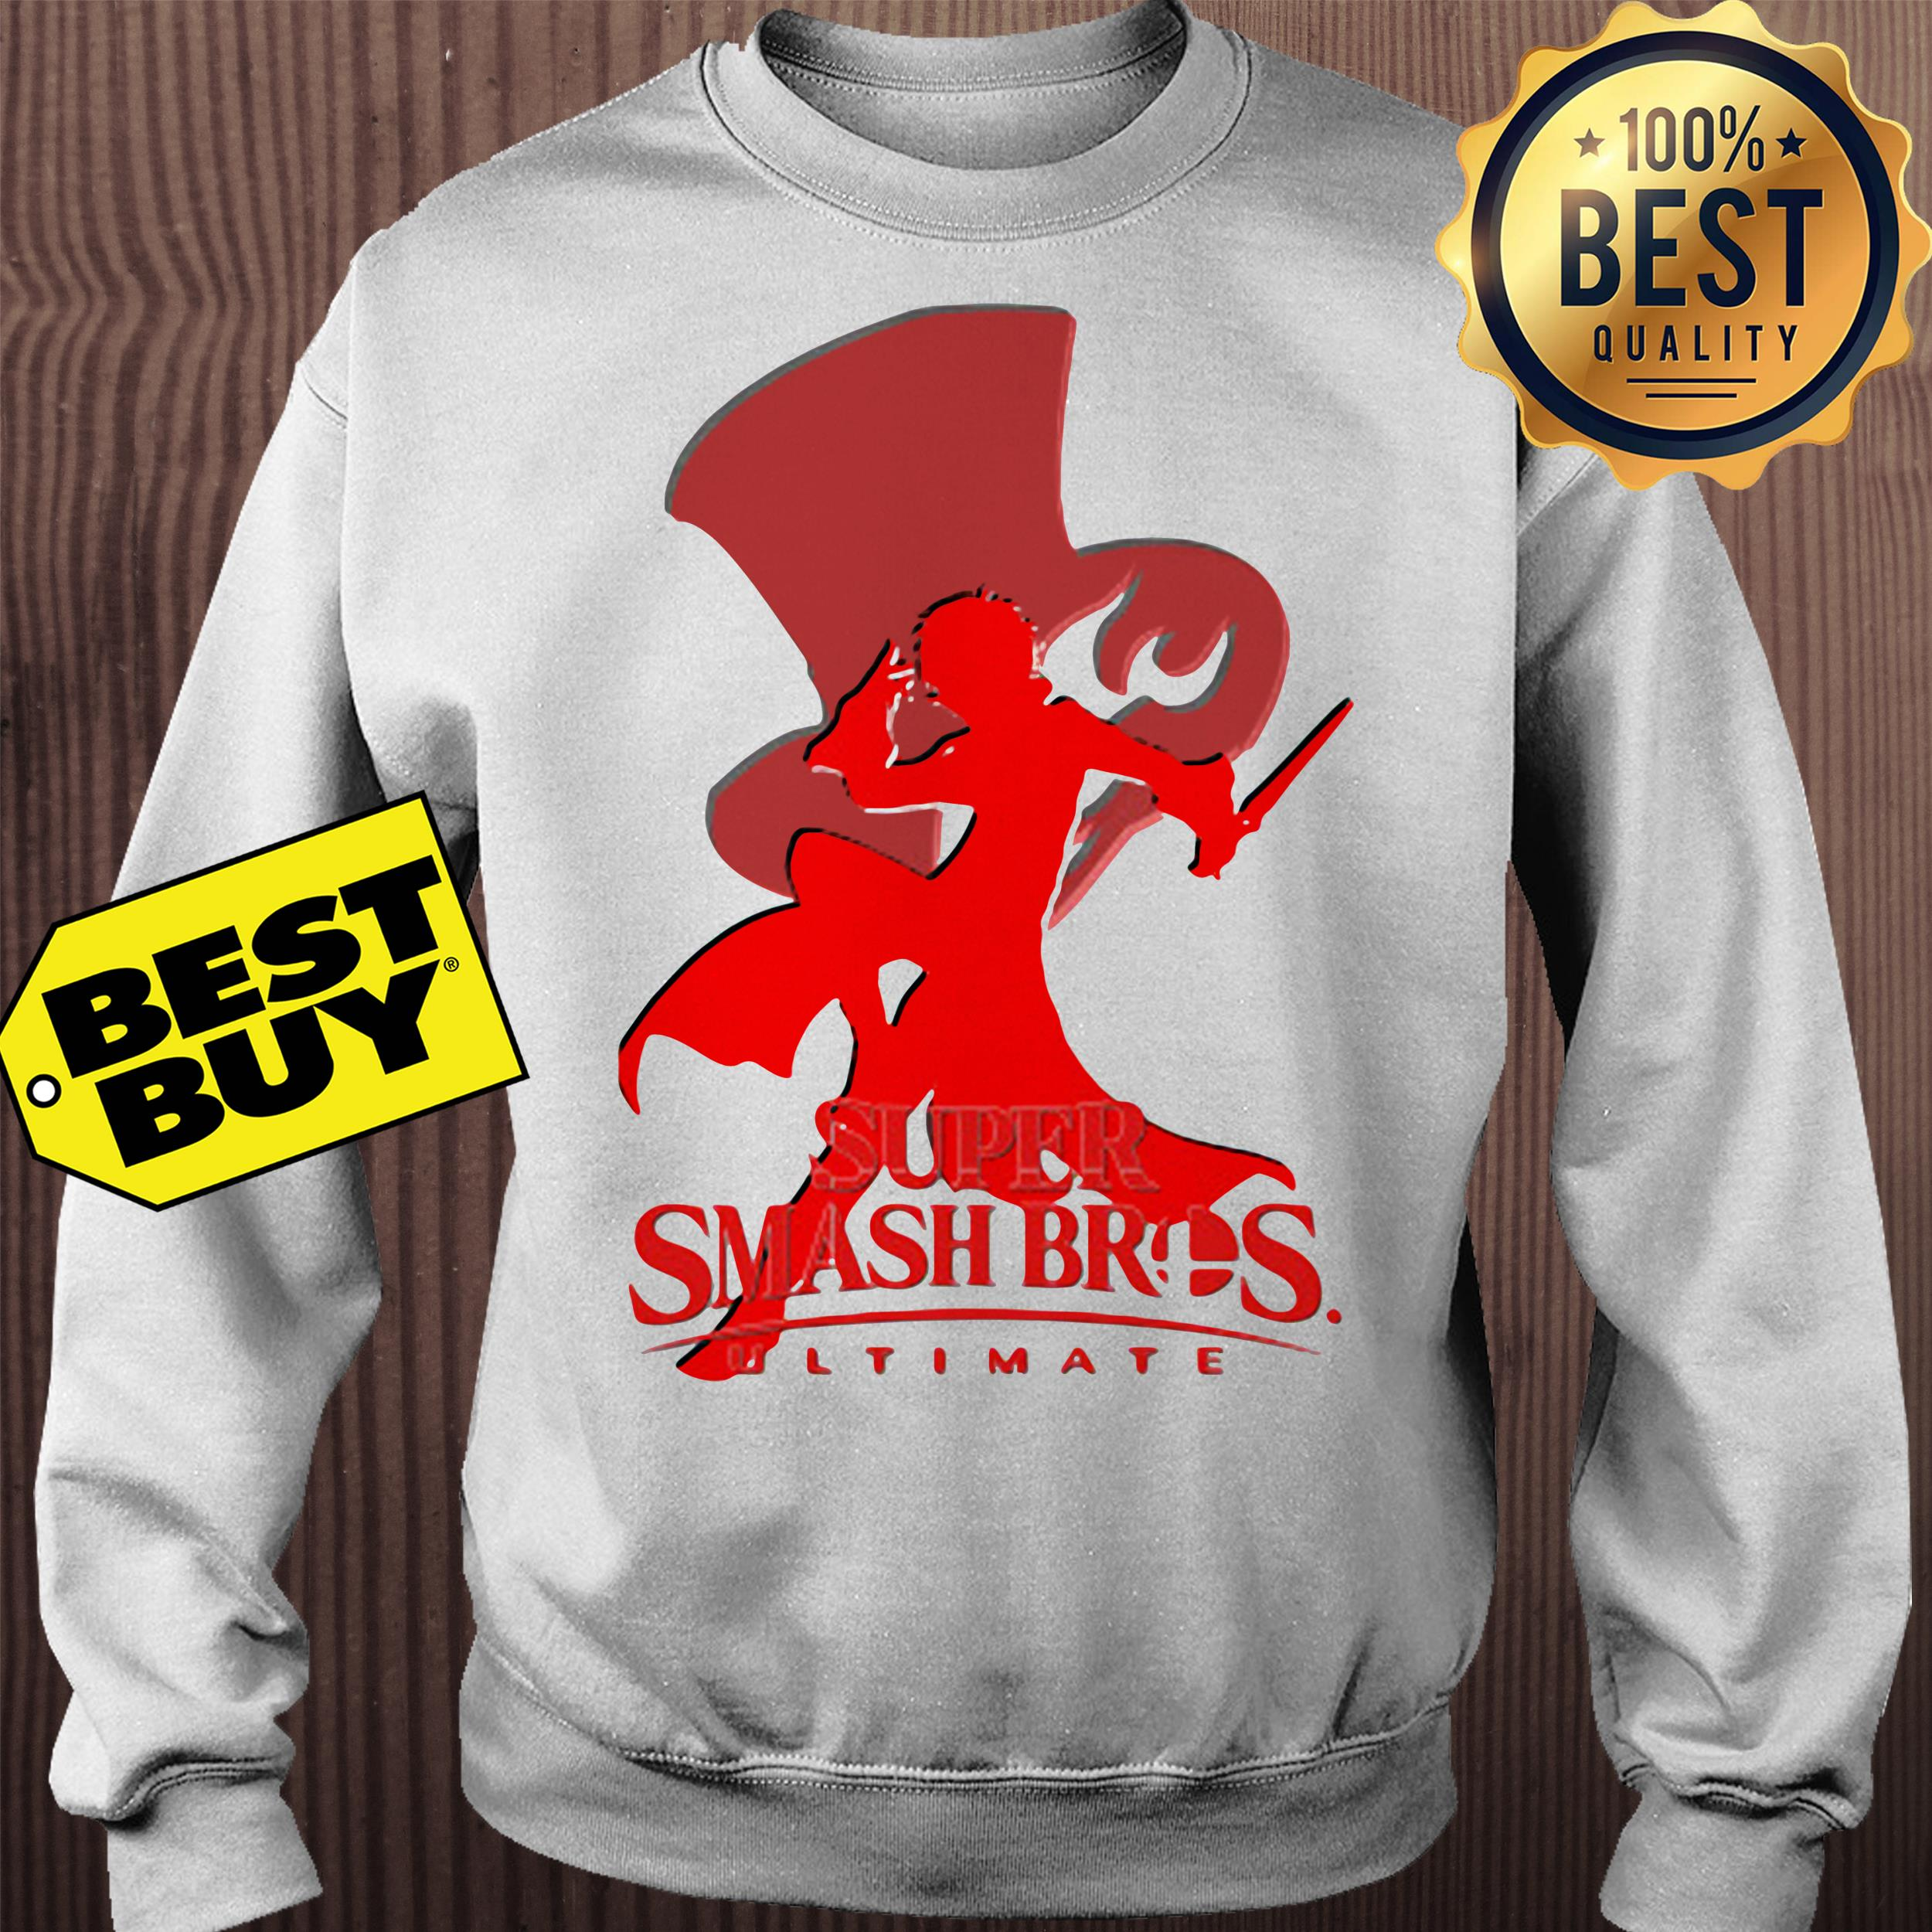 Joker Silhouette Crew Neck super smash bros ultimate sweatshirt